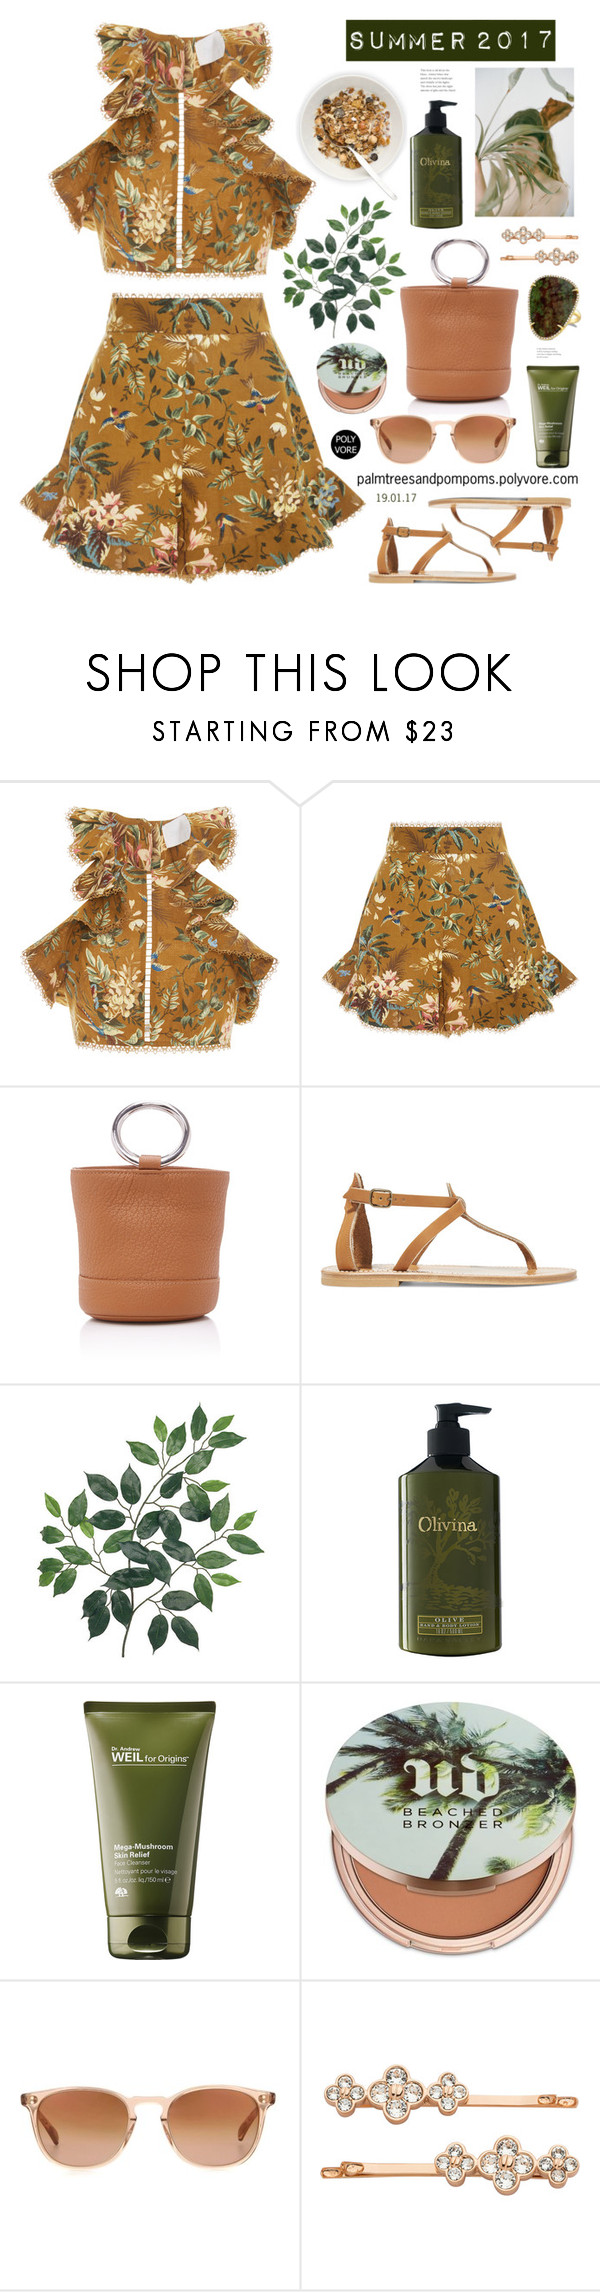 """""""Summer 2017"""" by palmtreesandpompoms ❤ liked on Polyvore featuring Zimmermann, Simon Miller, K. Jacques, Olivina, Origins, Urban Decay, Oliver Peoples, Henri Bendel and Anne Sisteron"""